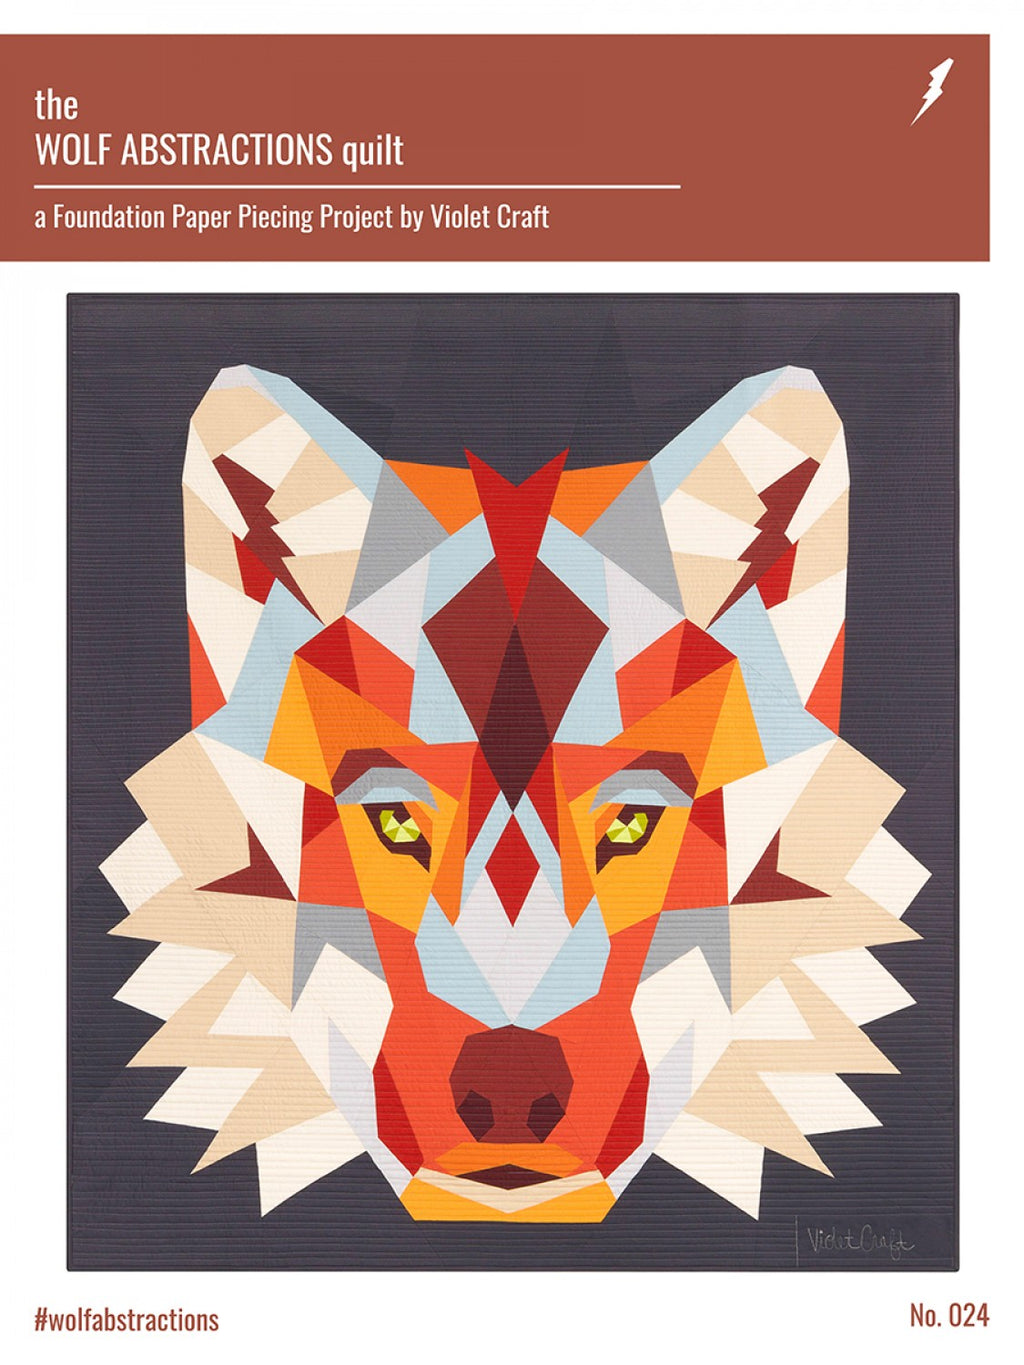 Wolf Abstractions Foundation Paper Pieced Quilt Pattern by Violet Craft - VC024